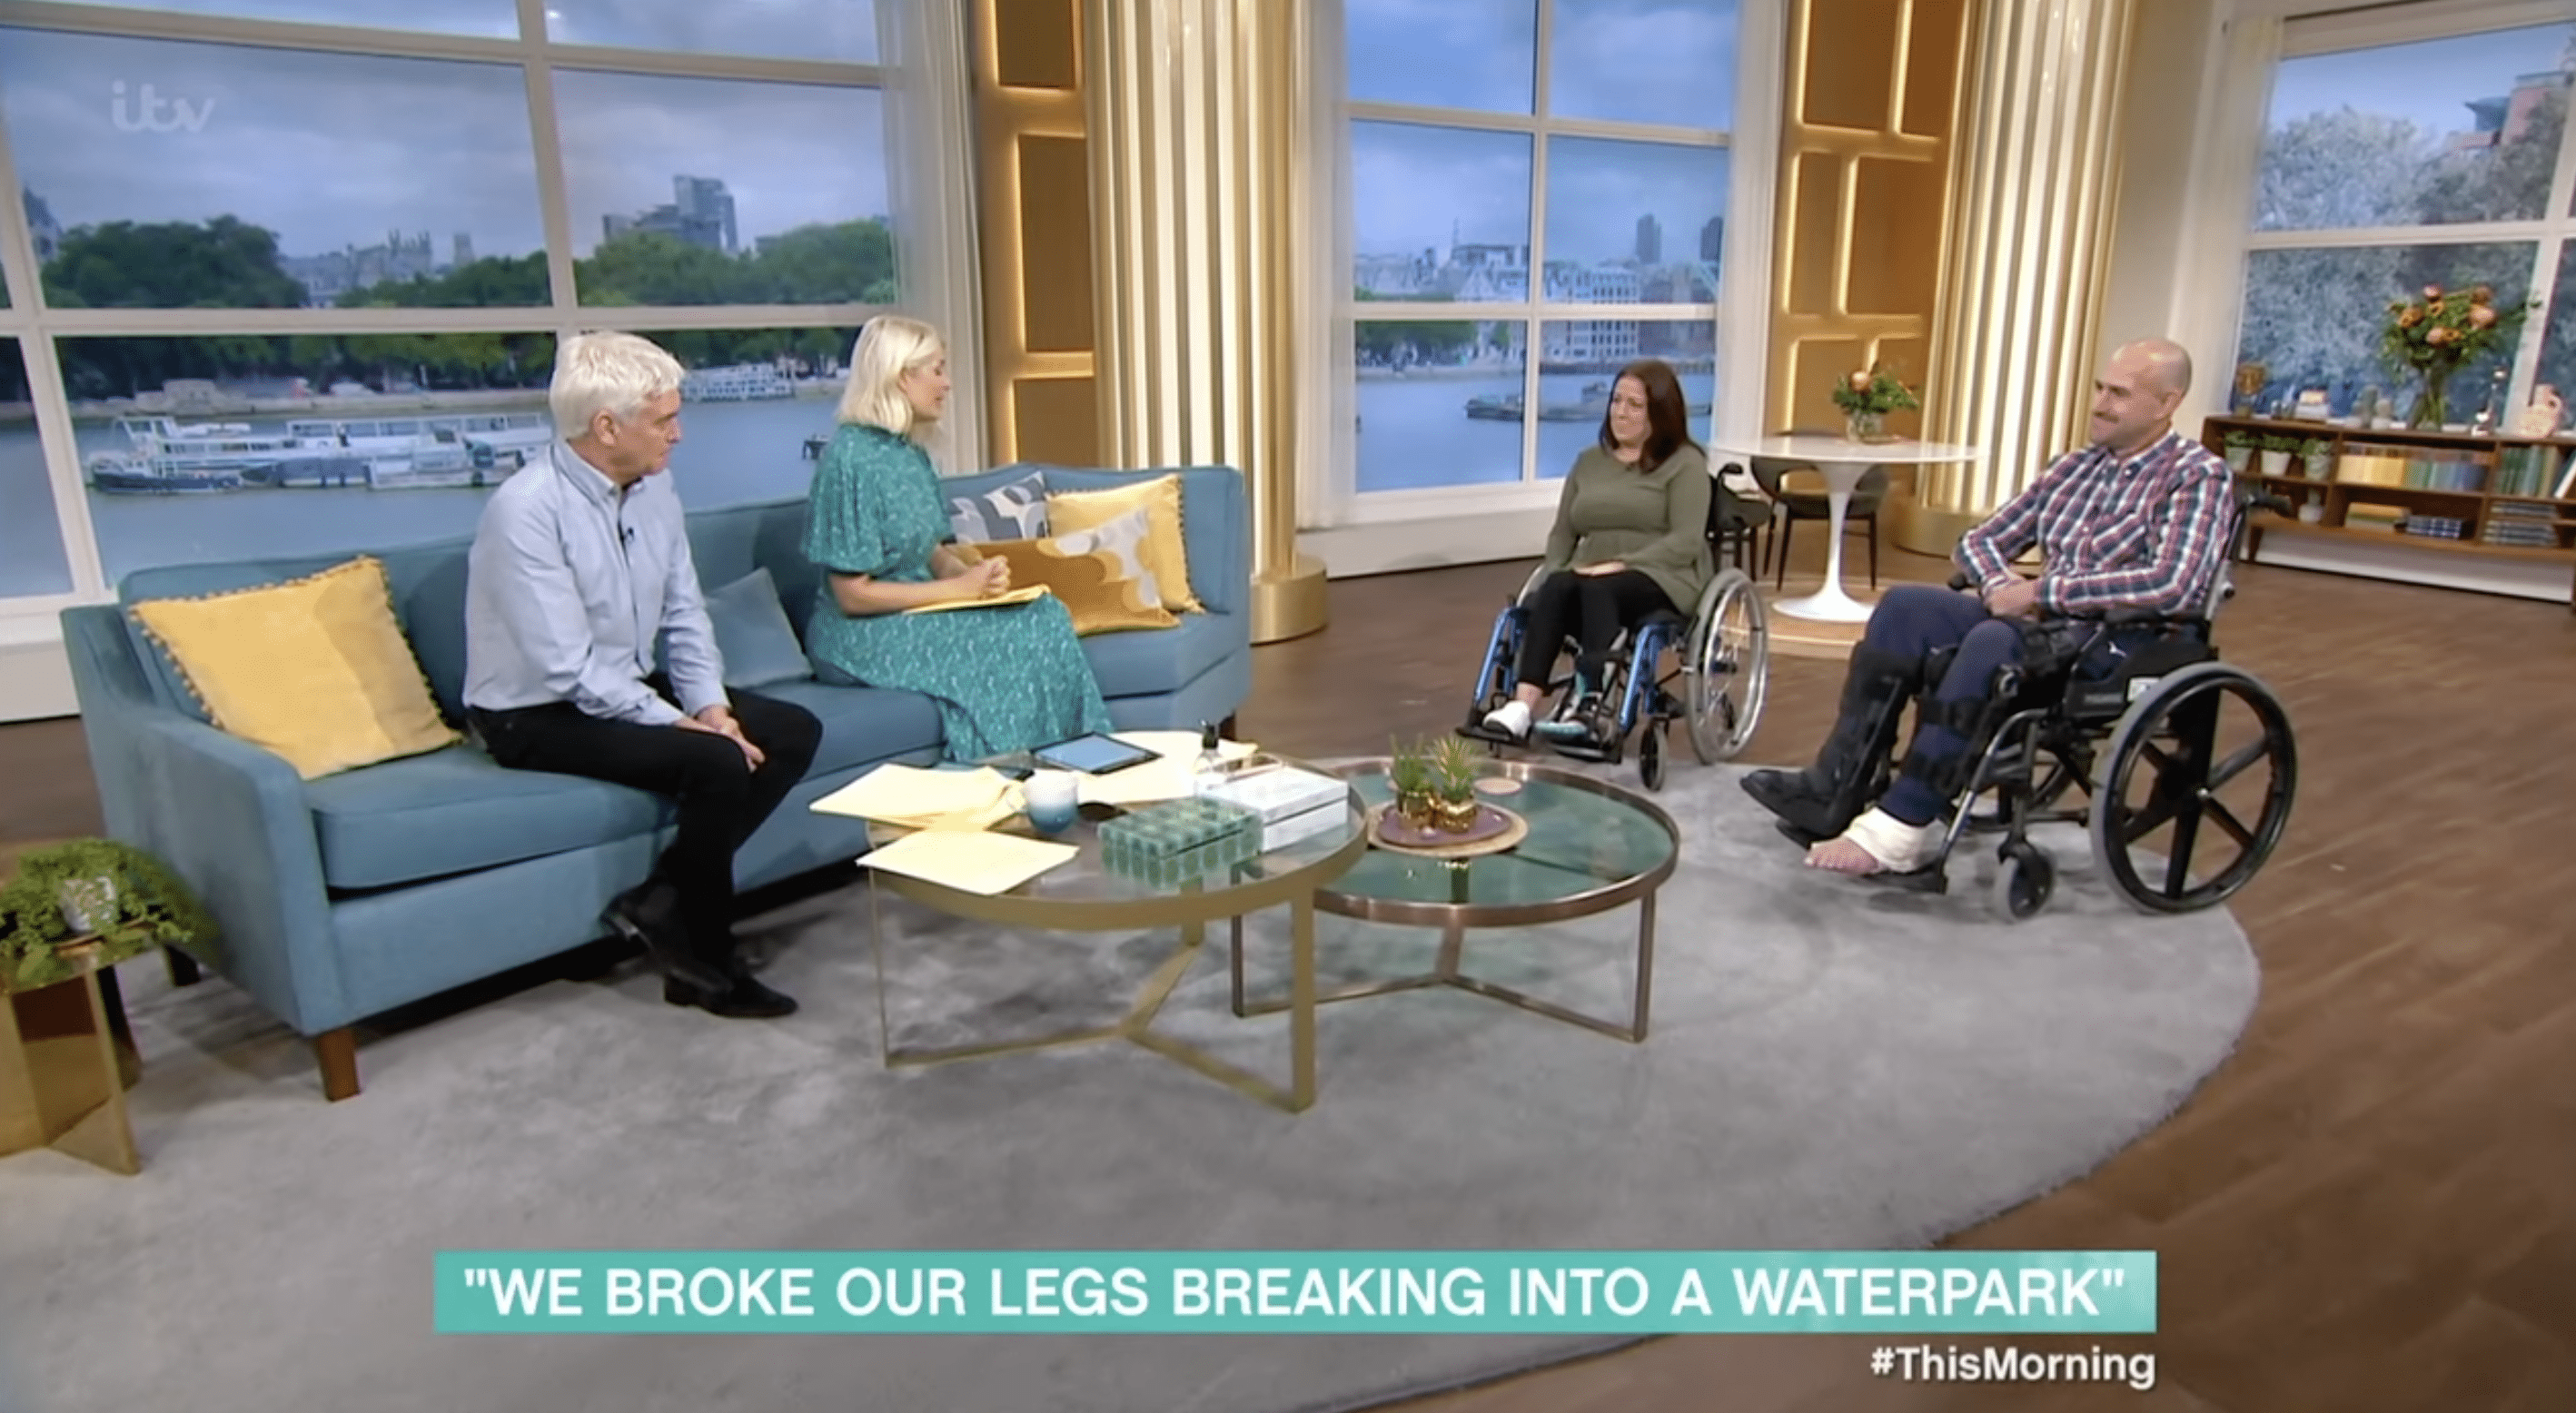 """Claire Vickers and Barry Douglas shared the story of their horrible accident with """"ThisMorning."""" 